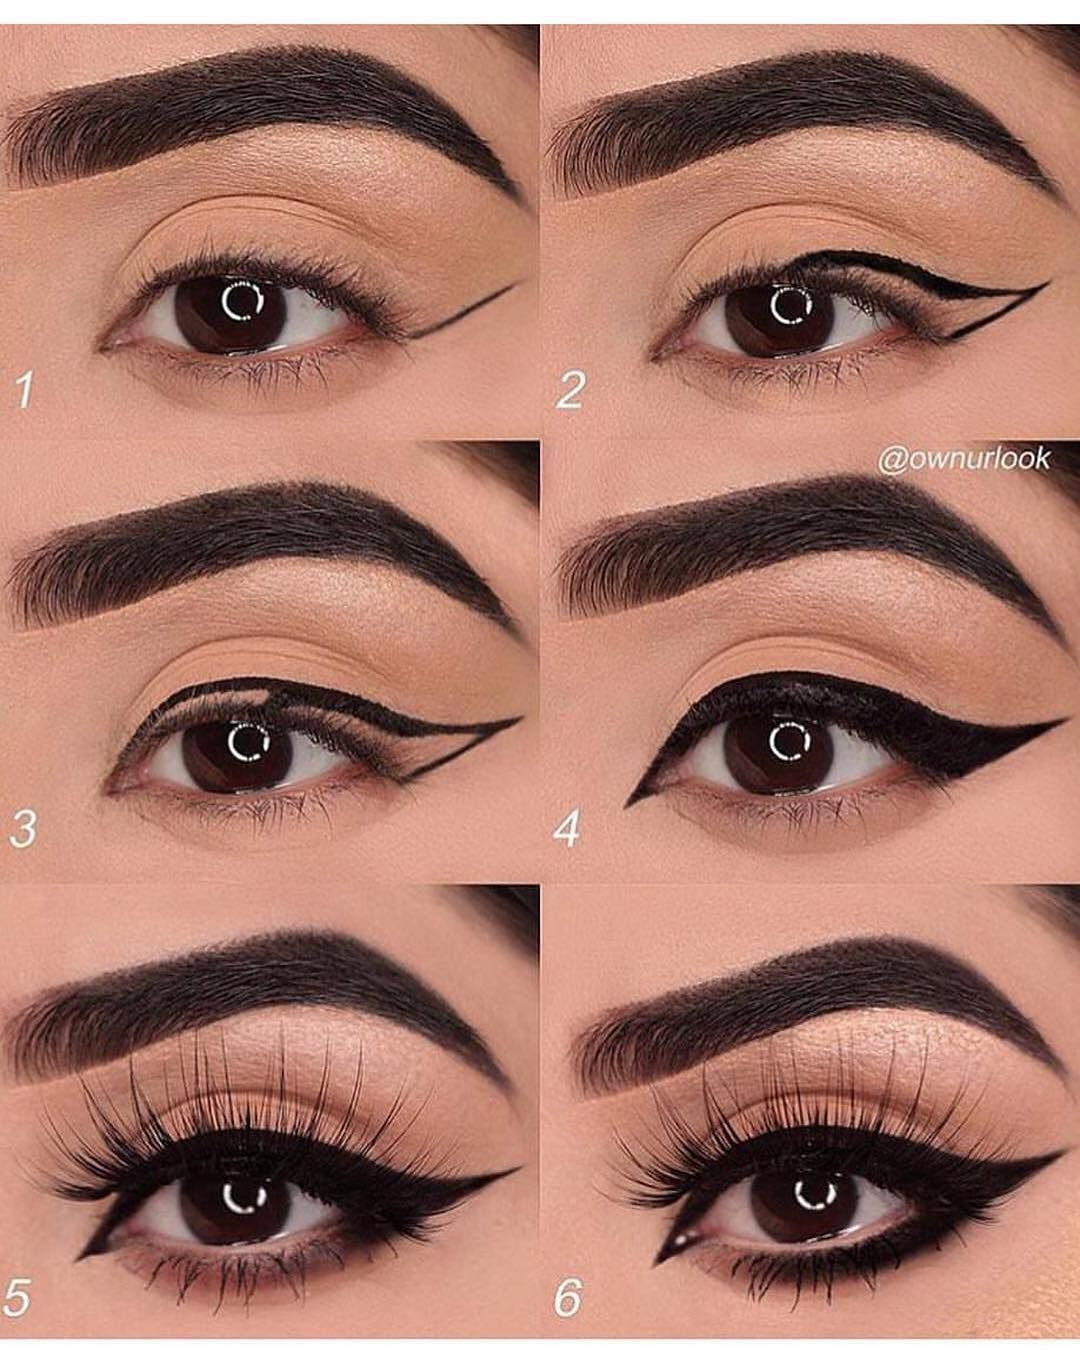 Make Makeuptutorial Makeupartist Maker Makeuptutorialsx0x Makeupjunkie Makes Makeupslaves Make Makeup Eyeliner No Eyeliner Makeup Beautiful Eye Makeup